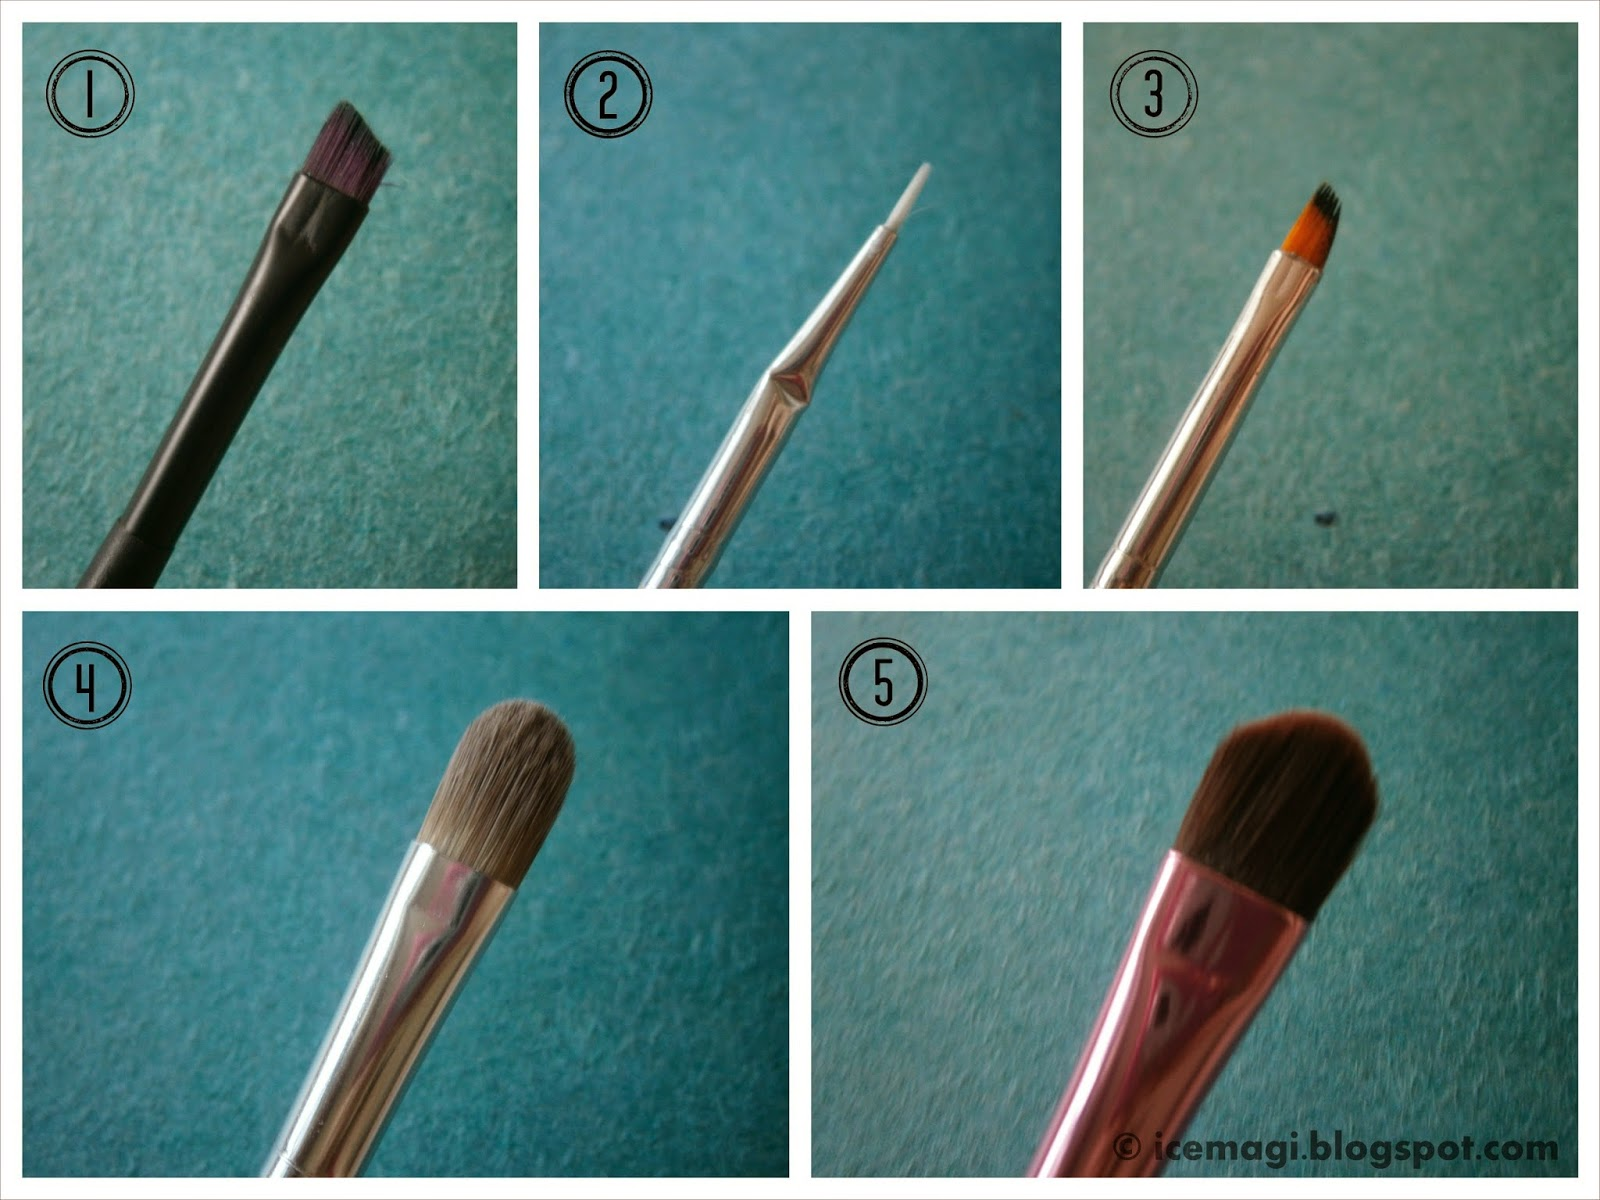 Eyeliner & eyeshadow brushes